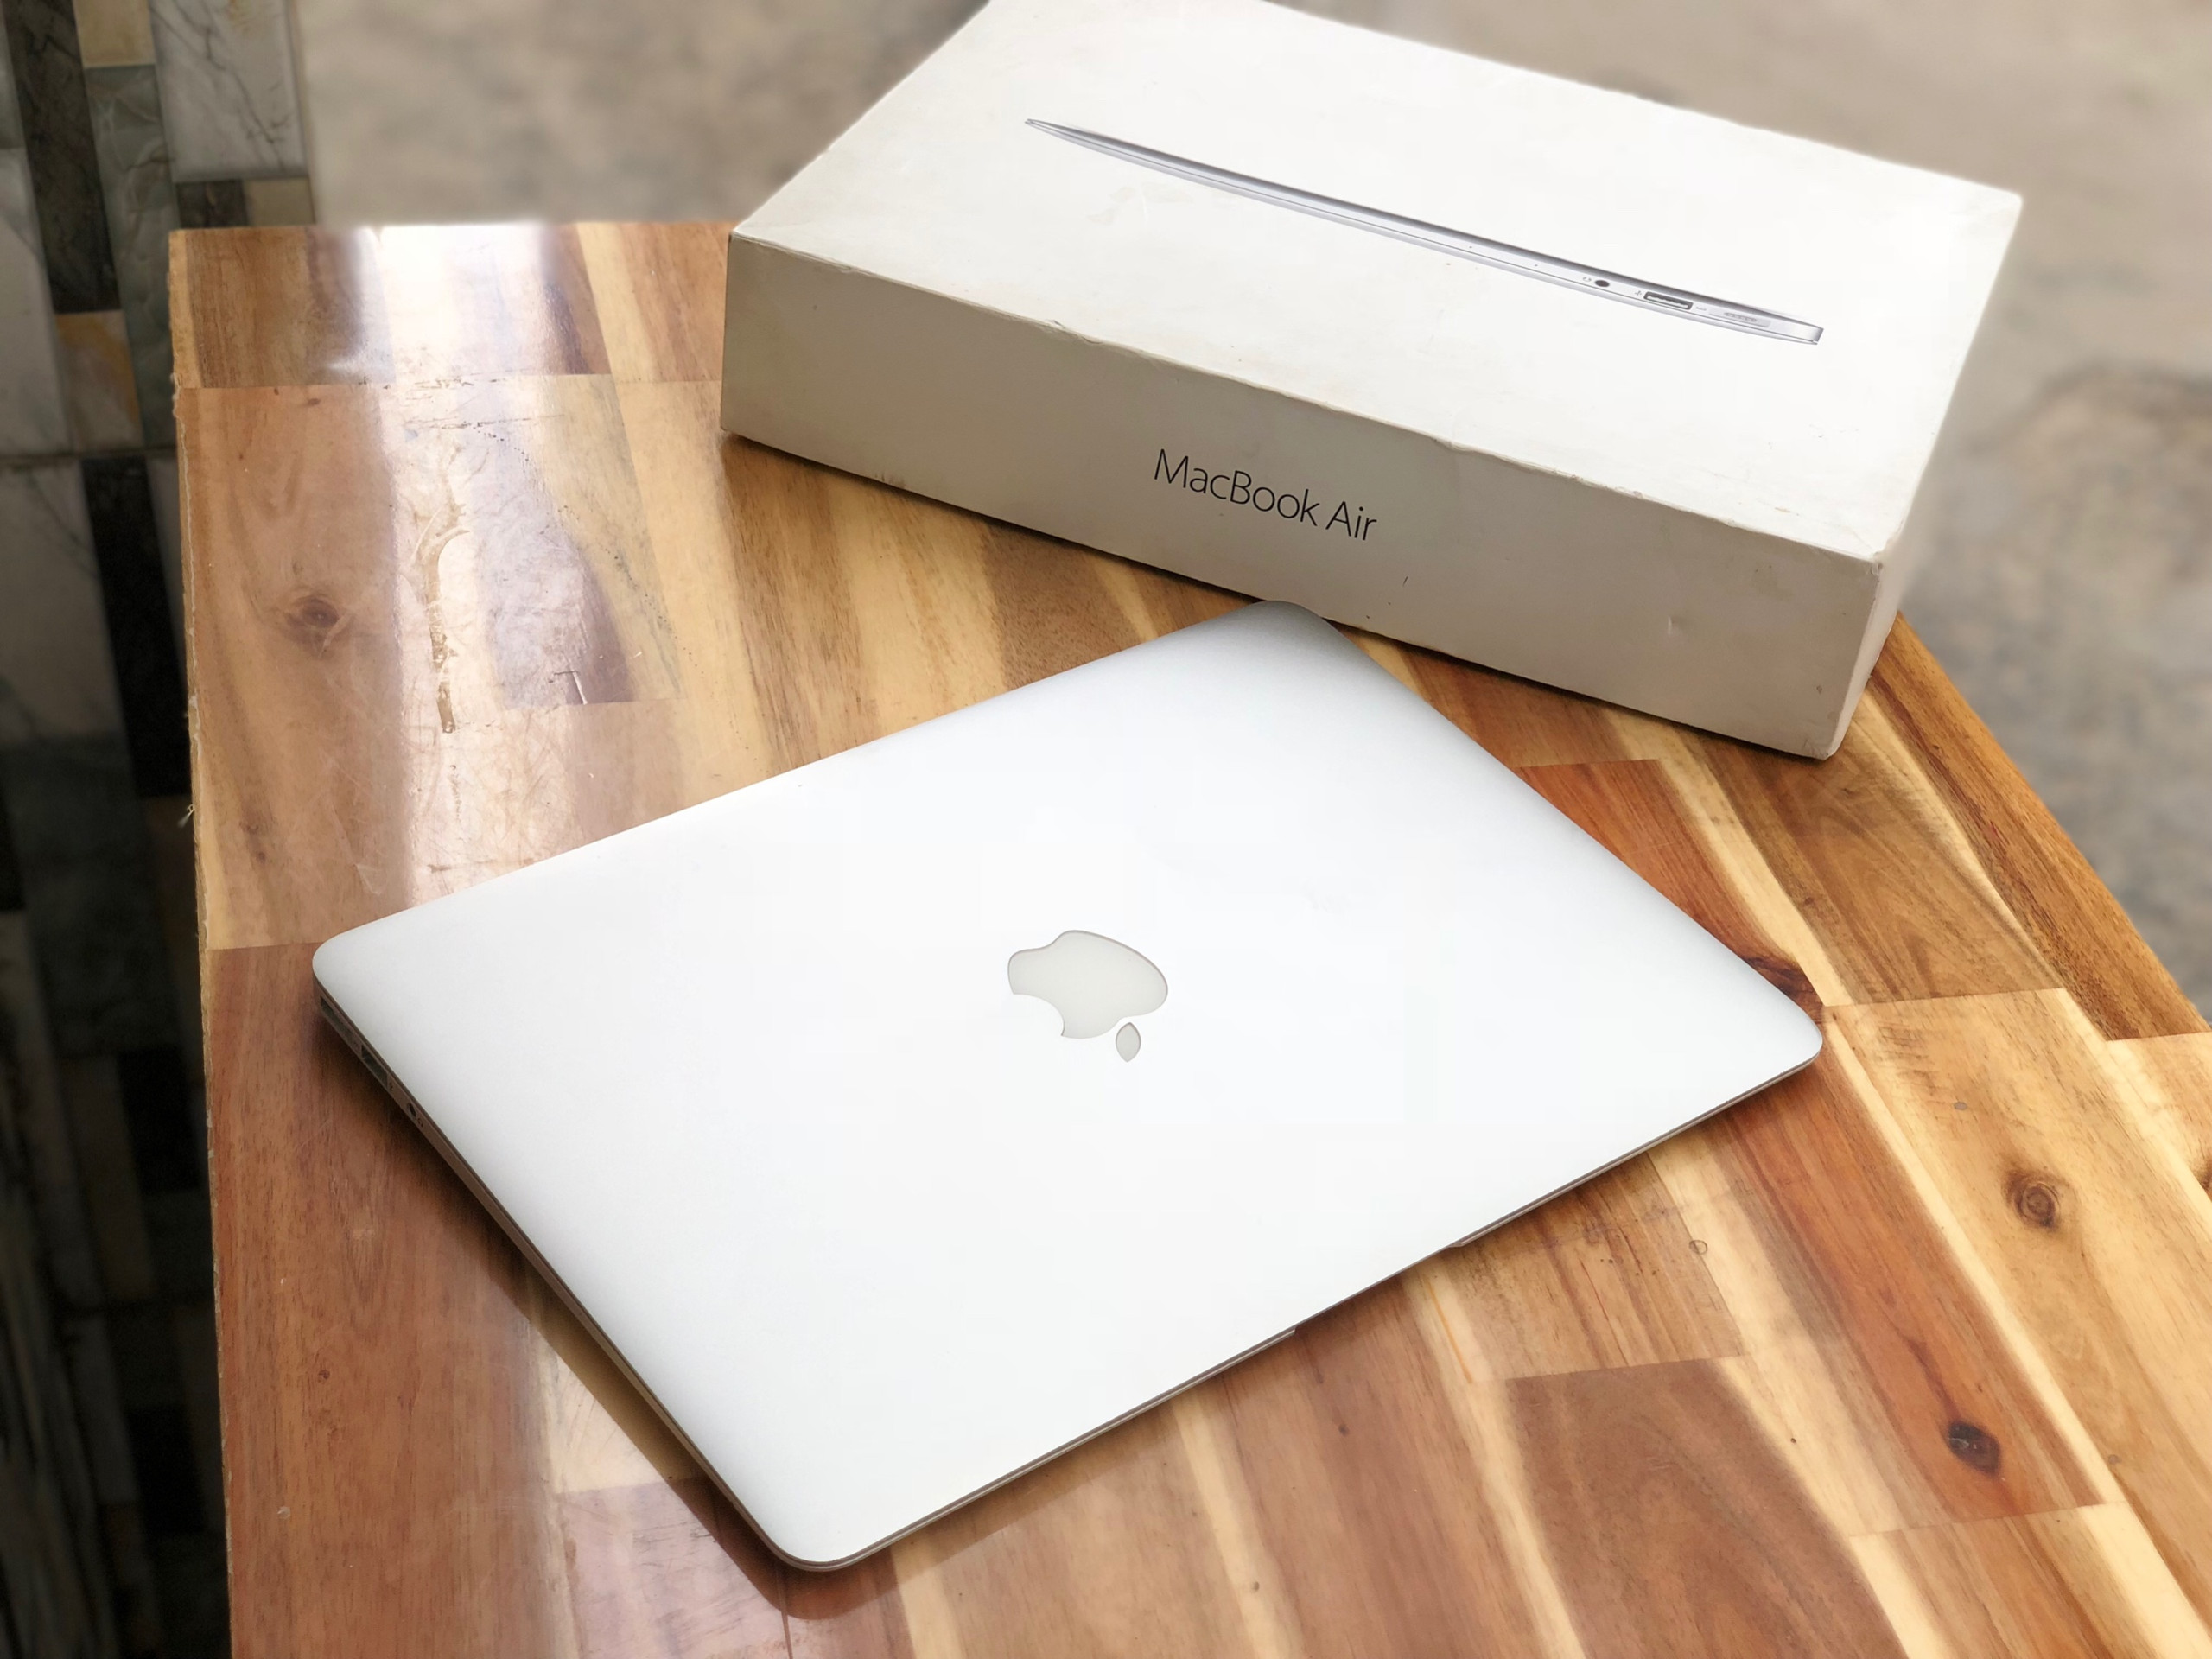 Macbook Air 2016 13in, i5 8G SSD256 Pin Khủng 5-10h Đẹp zin 100%4